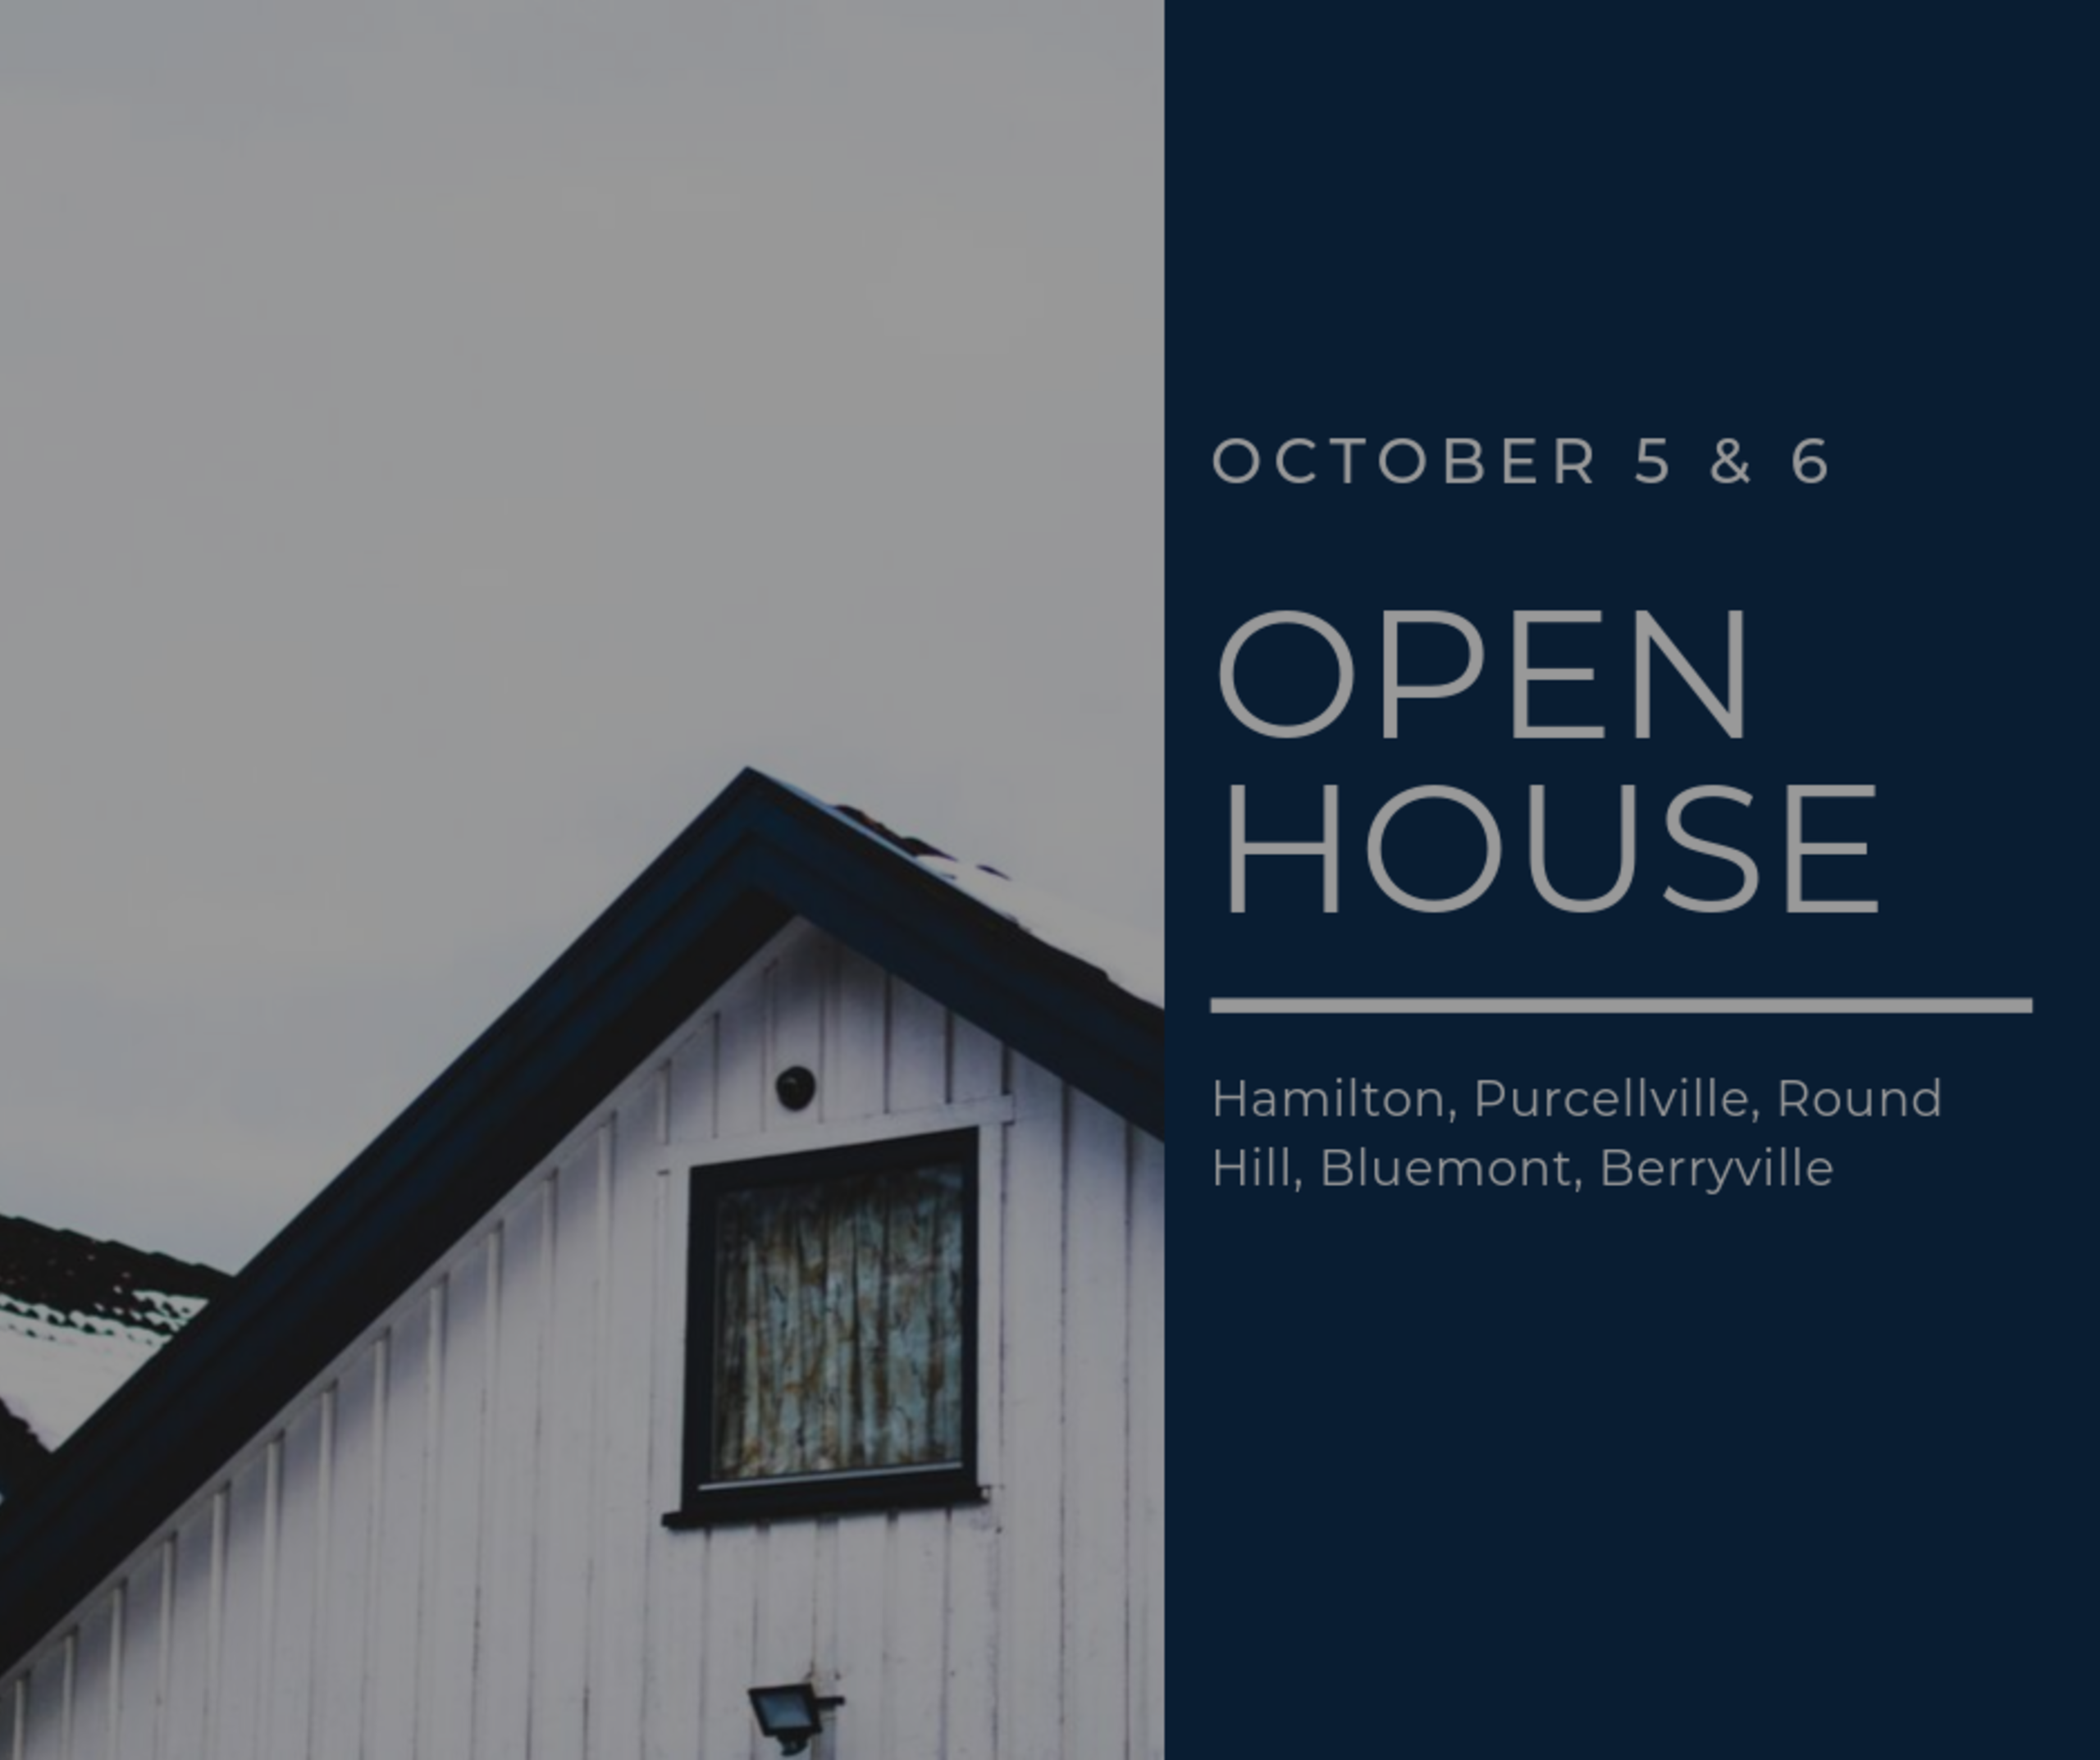 Open House List 10/4/19 – 10/5/19